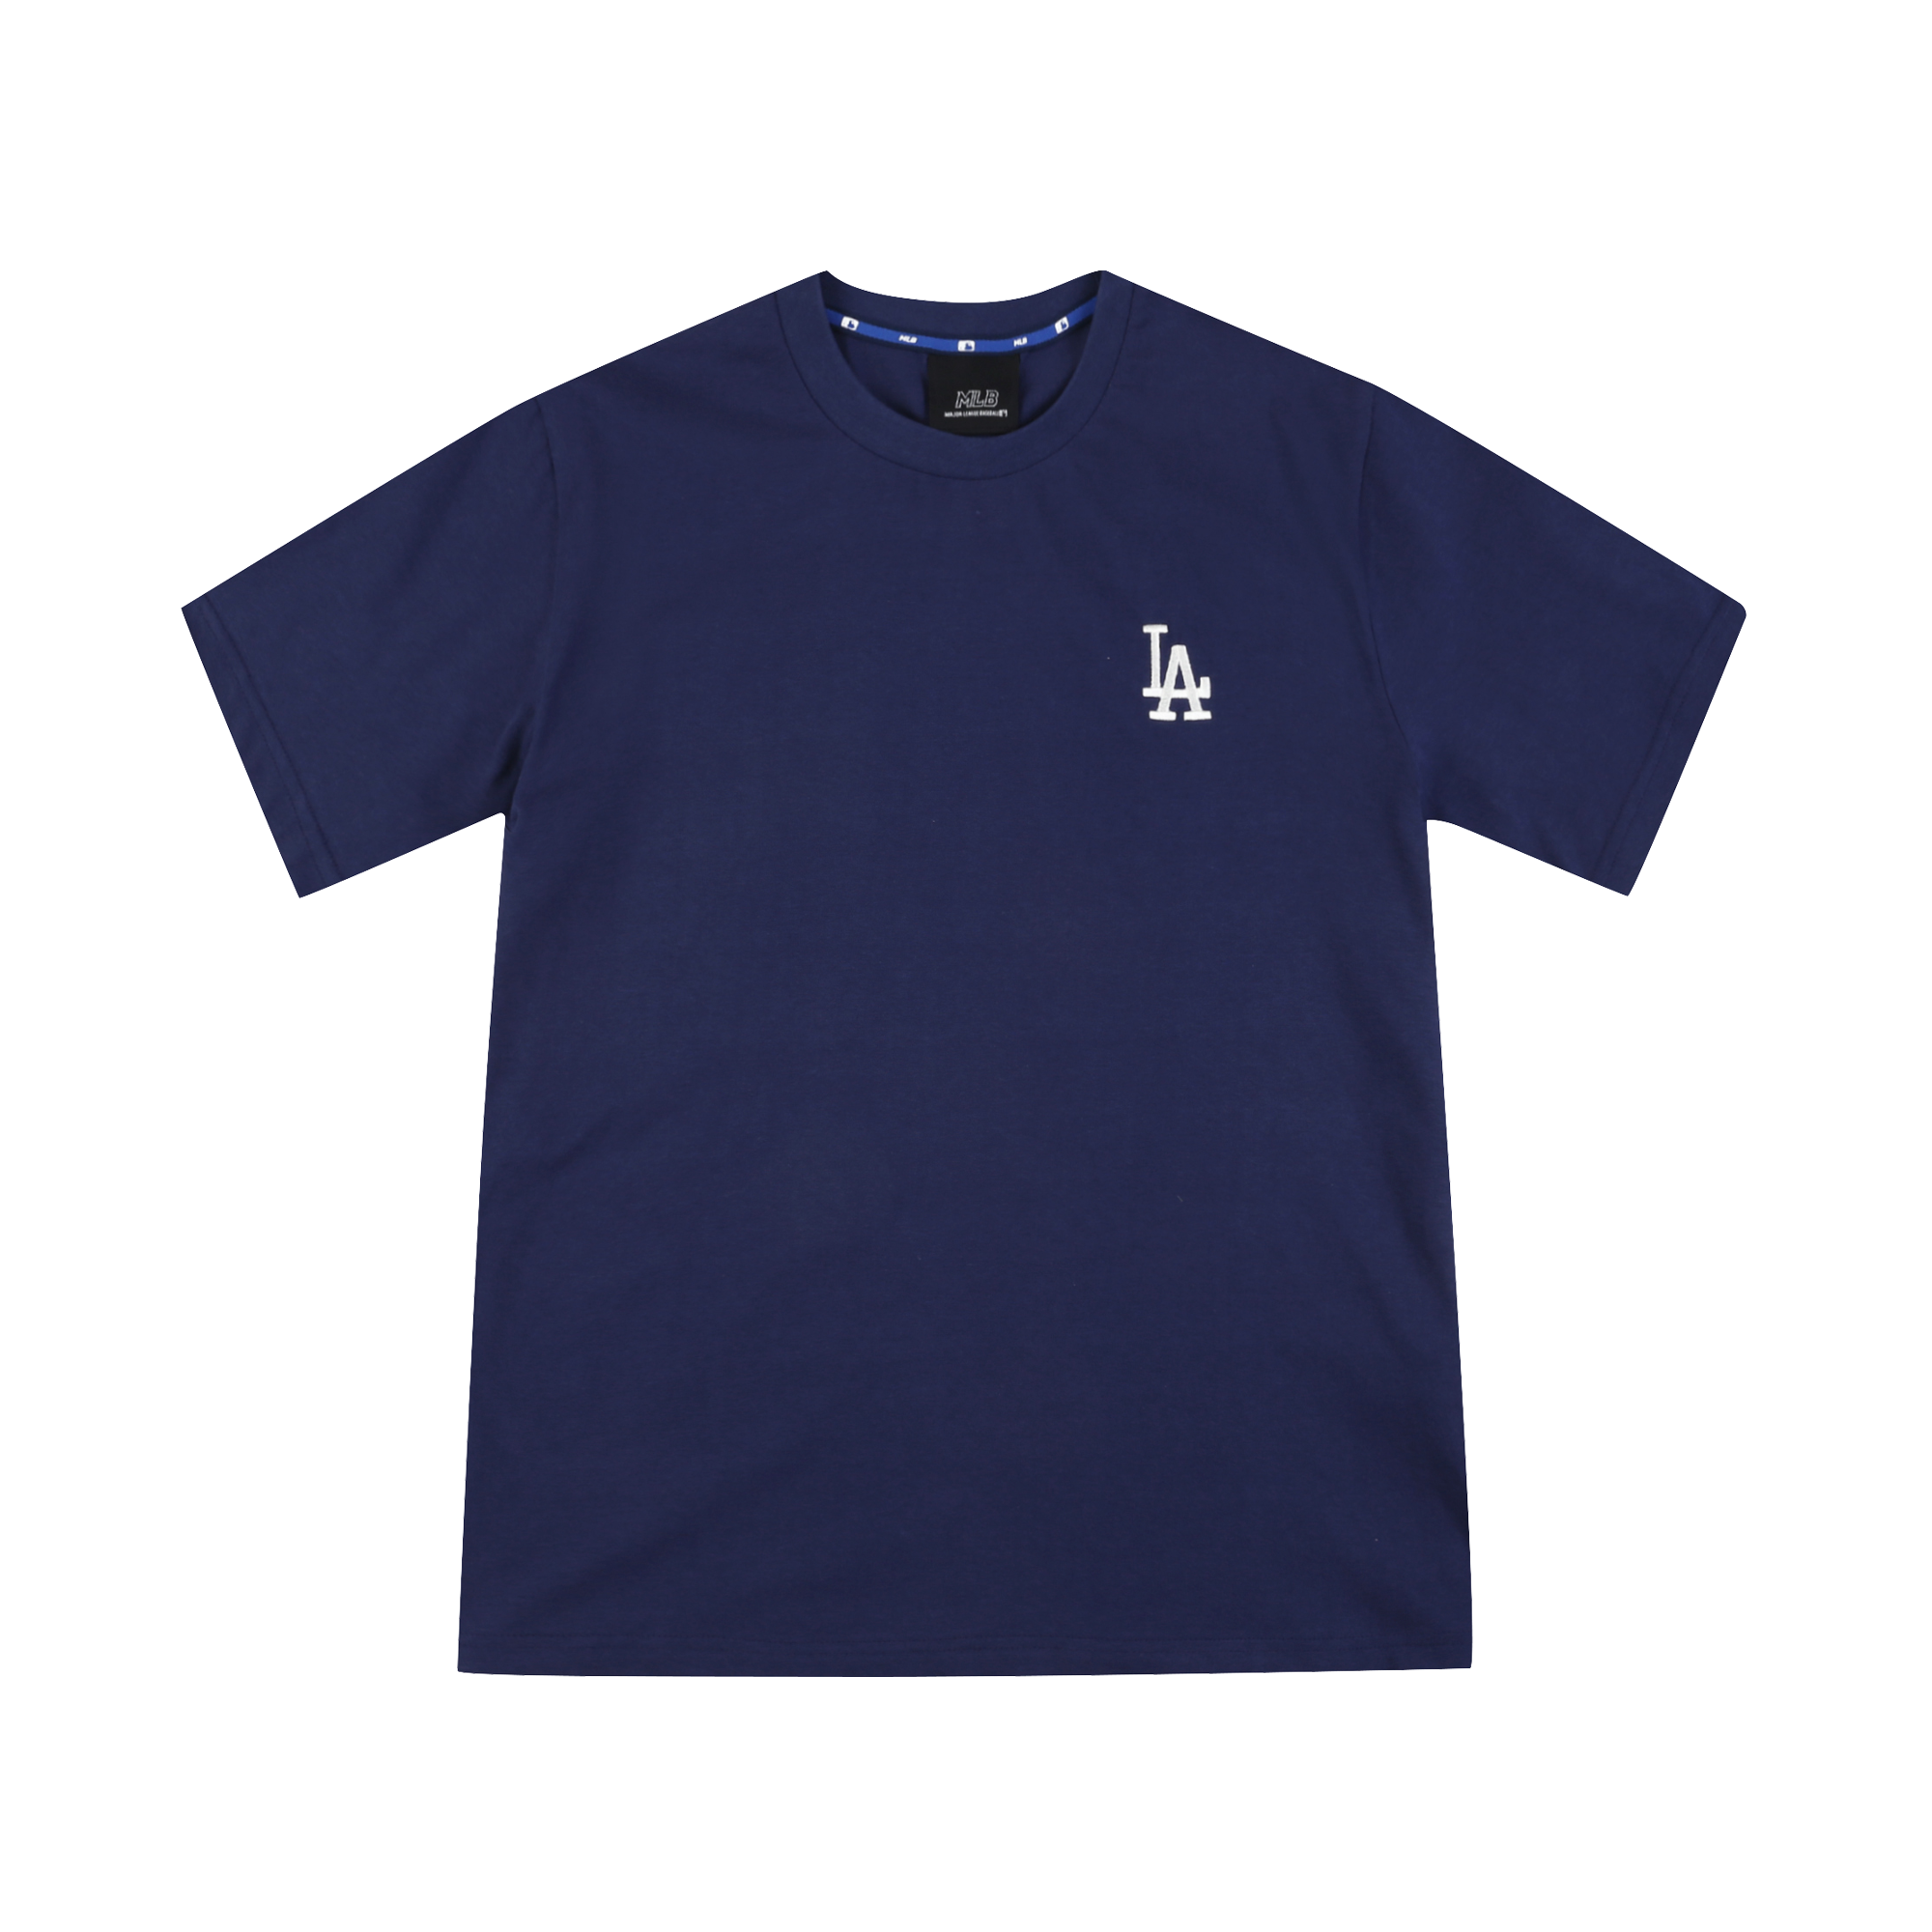 LA DODGERS POPPING BIG LOGO SHORT SLEEVED T-SHIRT